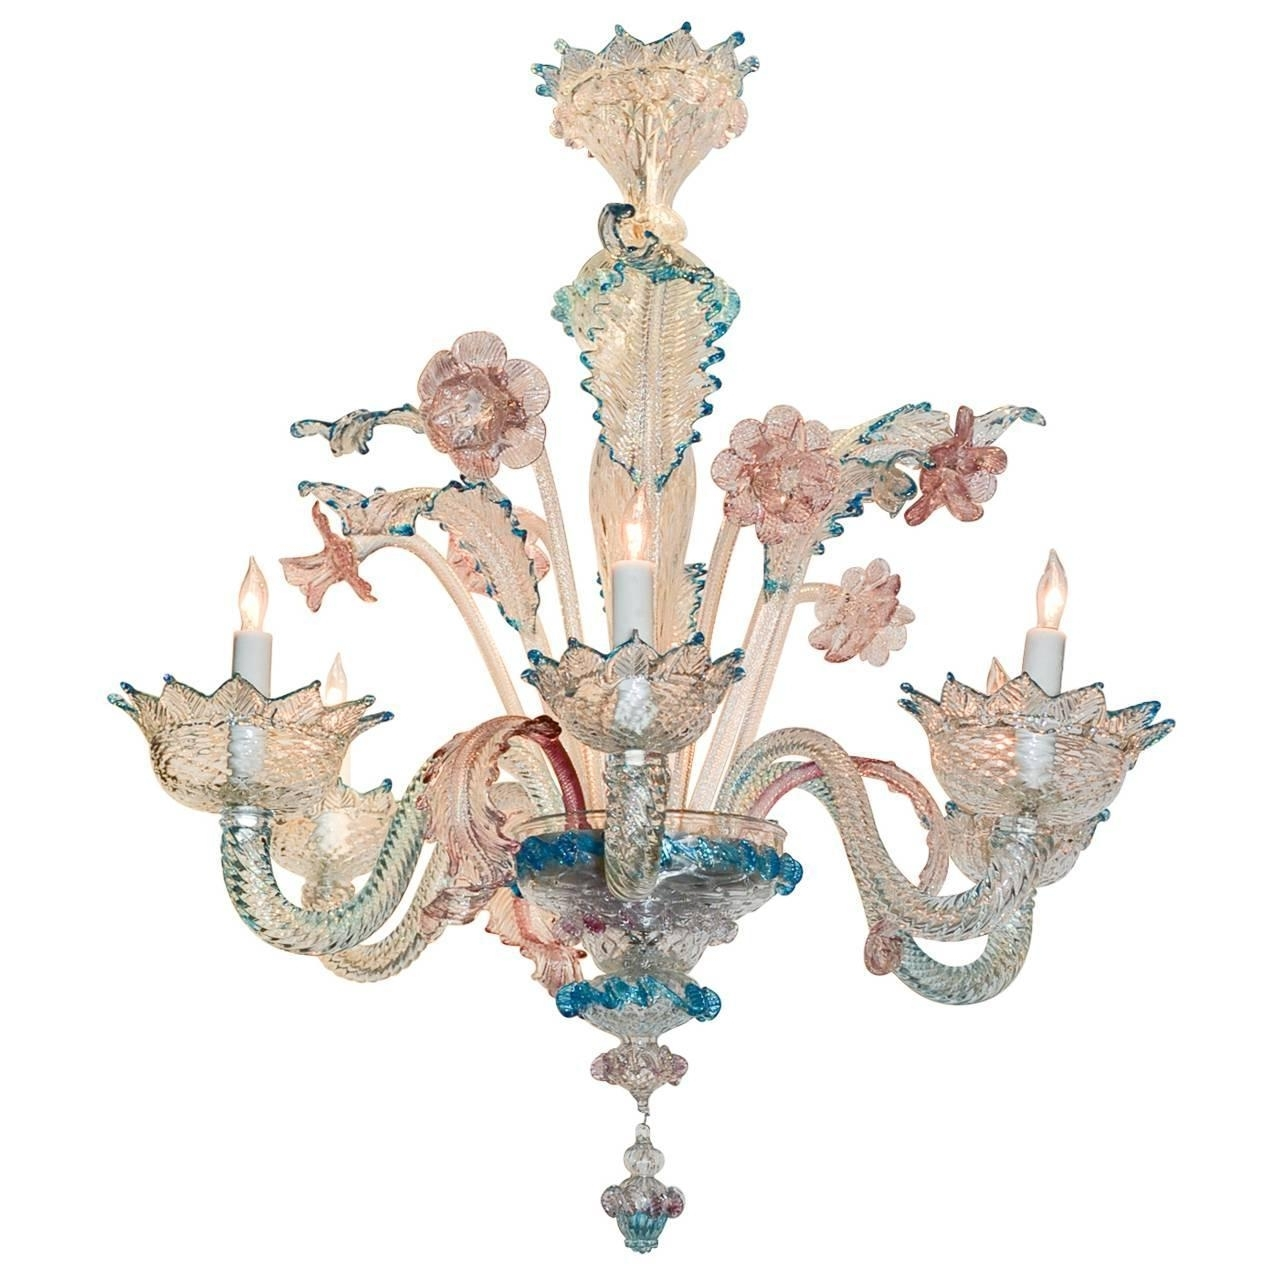 Lovely Antique Blue And Pink Murano Glass Chandelier At 1Stdibs Throughout Favorite Turquoise Blue Glass Chandeliers (View 8 of 20)